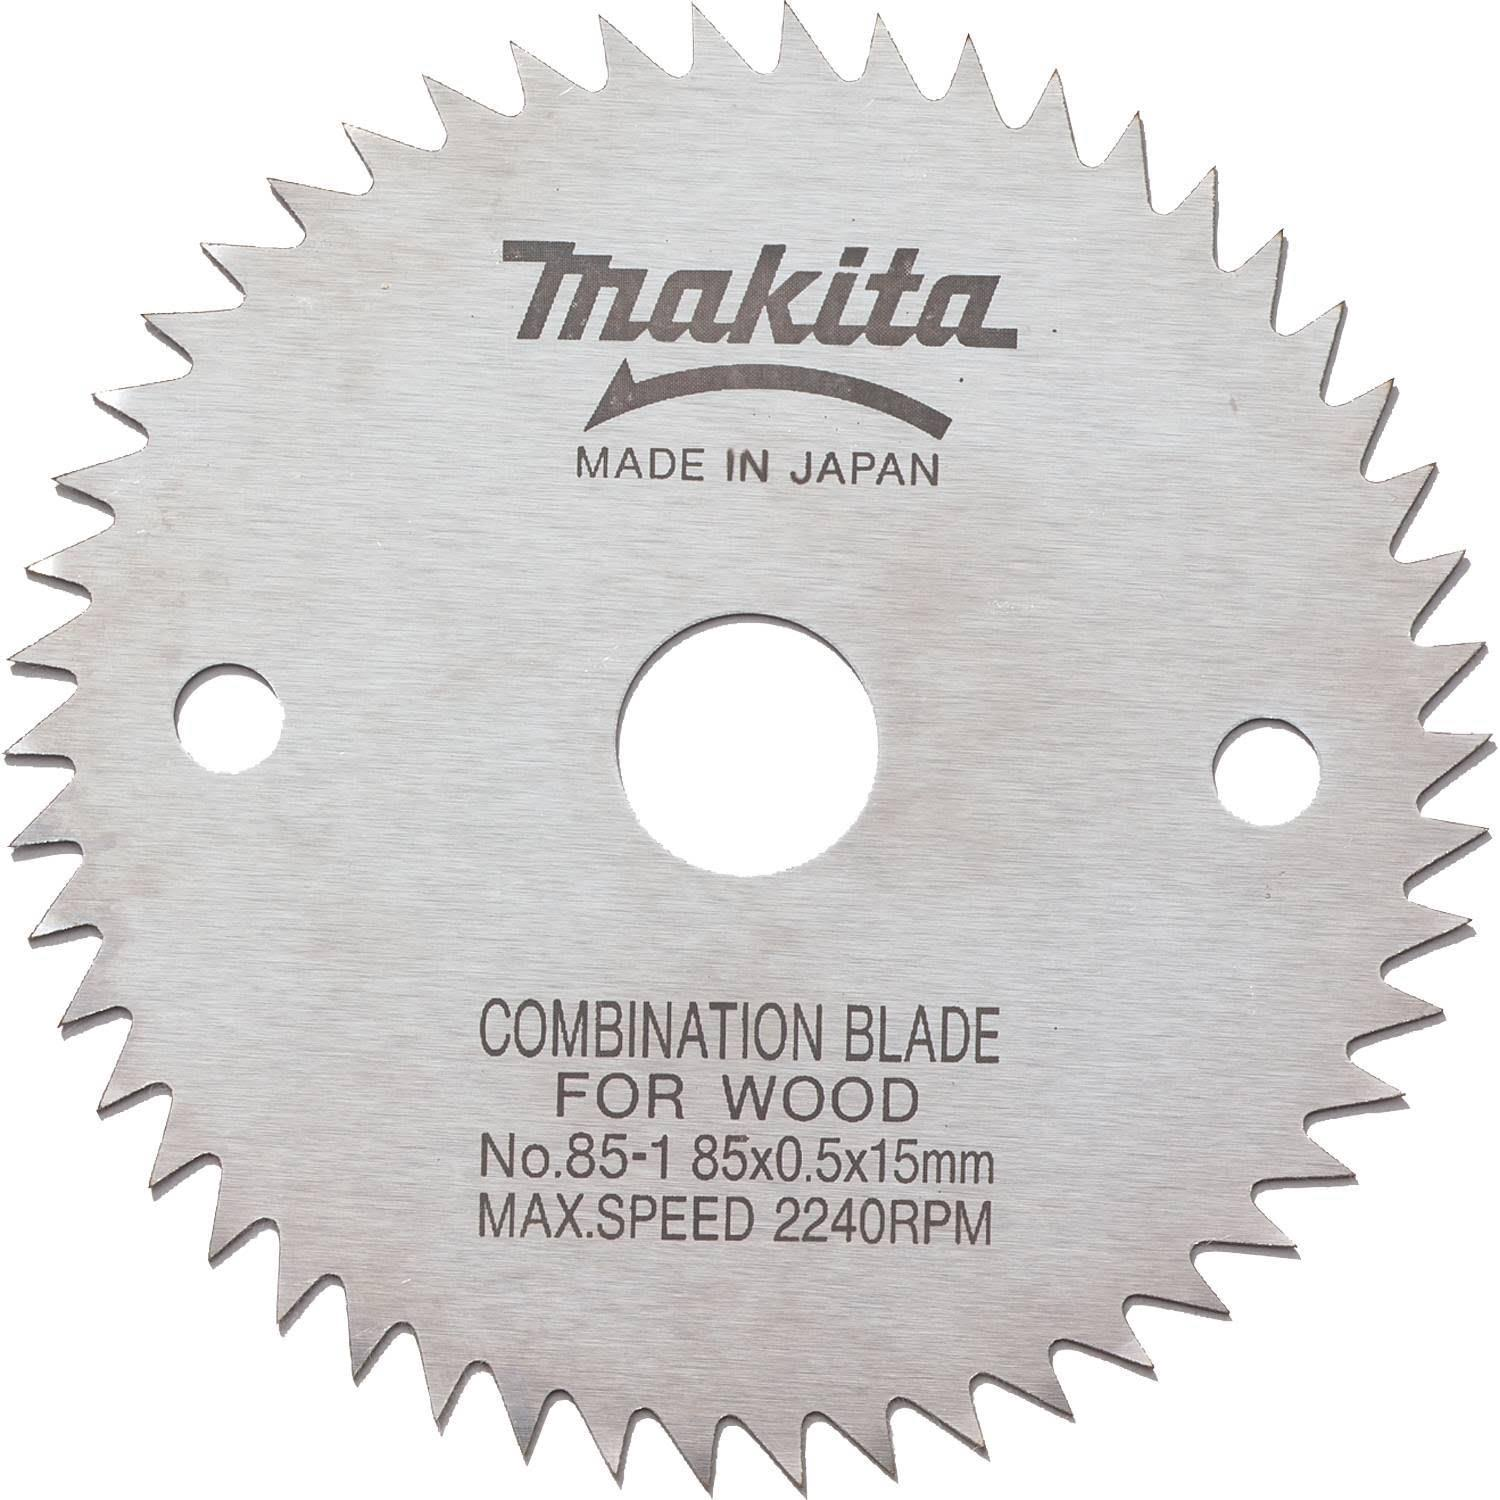 Makita 792259-0 Circular Saw Blade - 85mm x 15mm, 50T